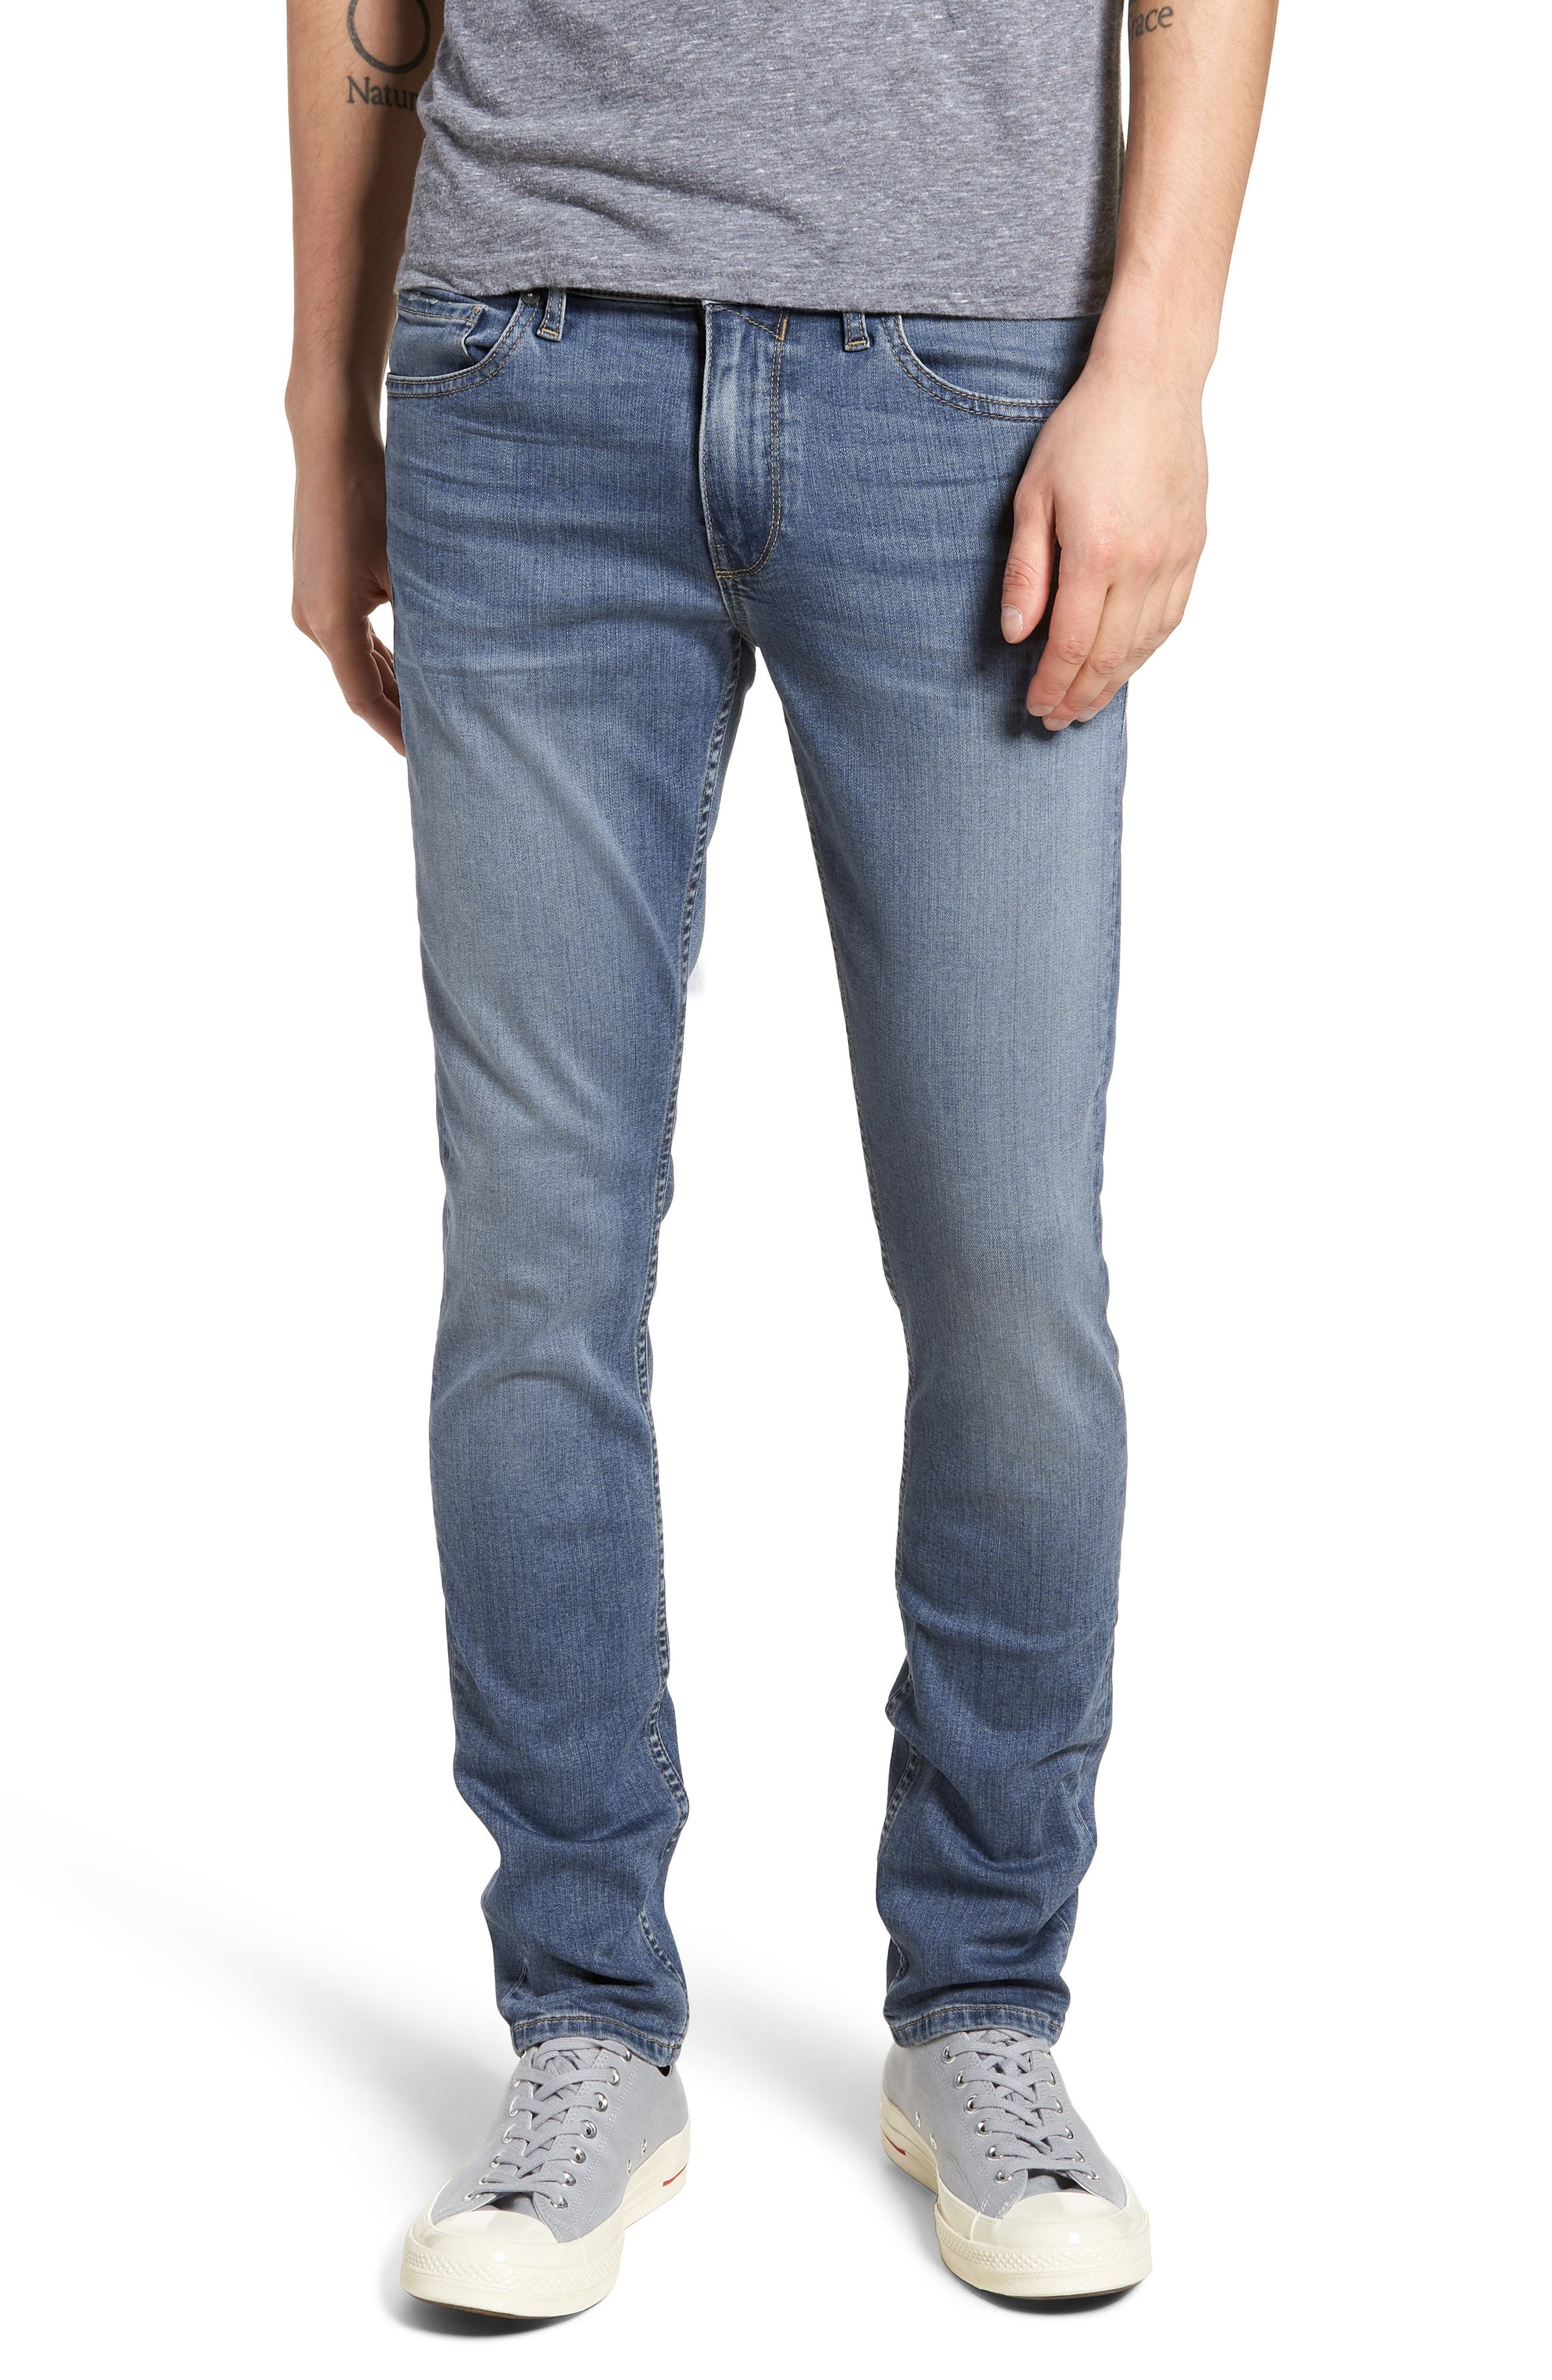 Croft Skinny Fit Jeans,                             Main thumbnail 1, color,                             400